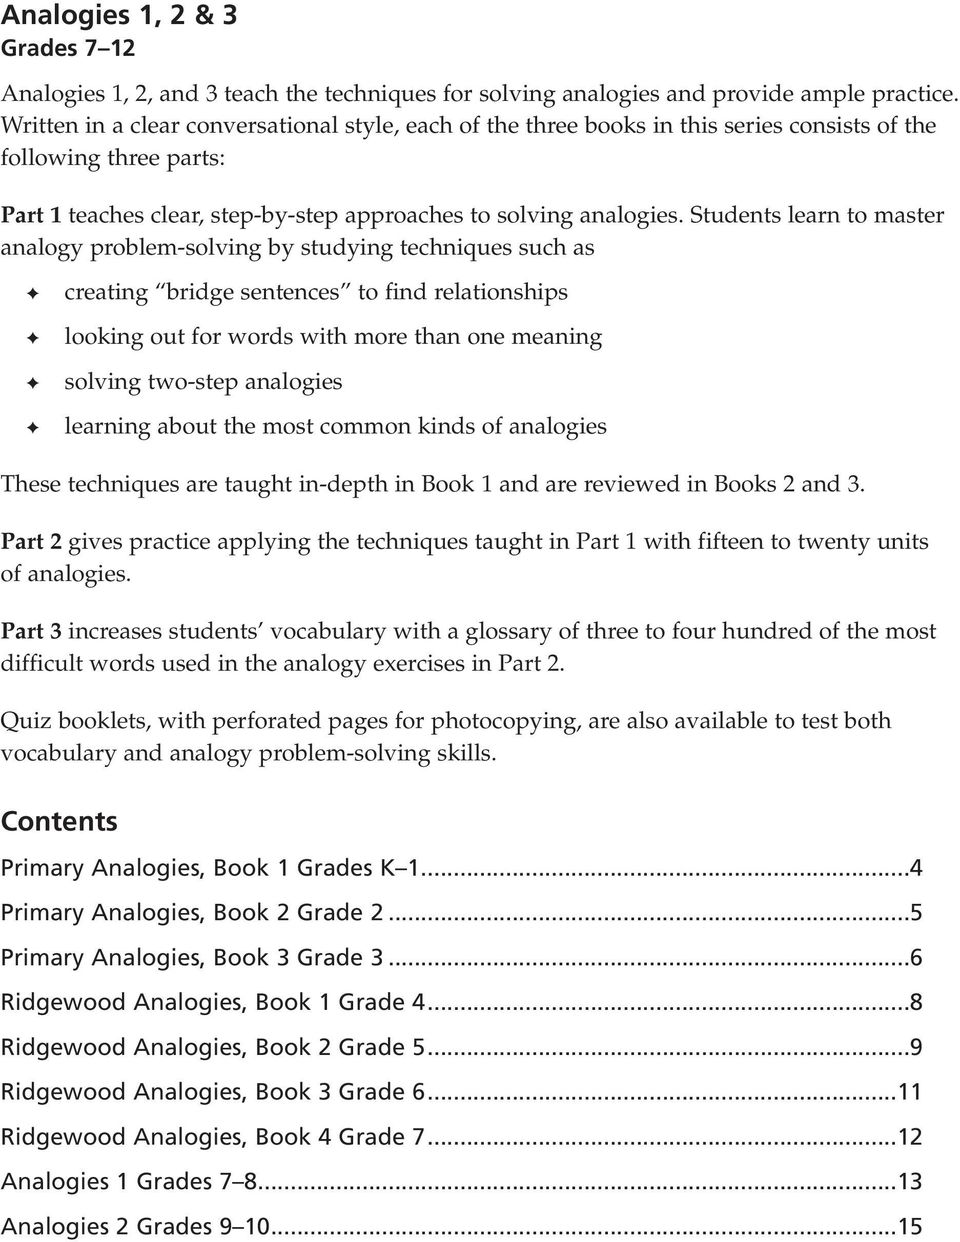 medium resolution of Analogies. Sampler for grades K 12 EDUCATORS PUBLISHING SERVICE - PDF Free  Download